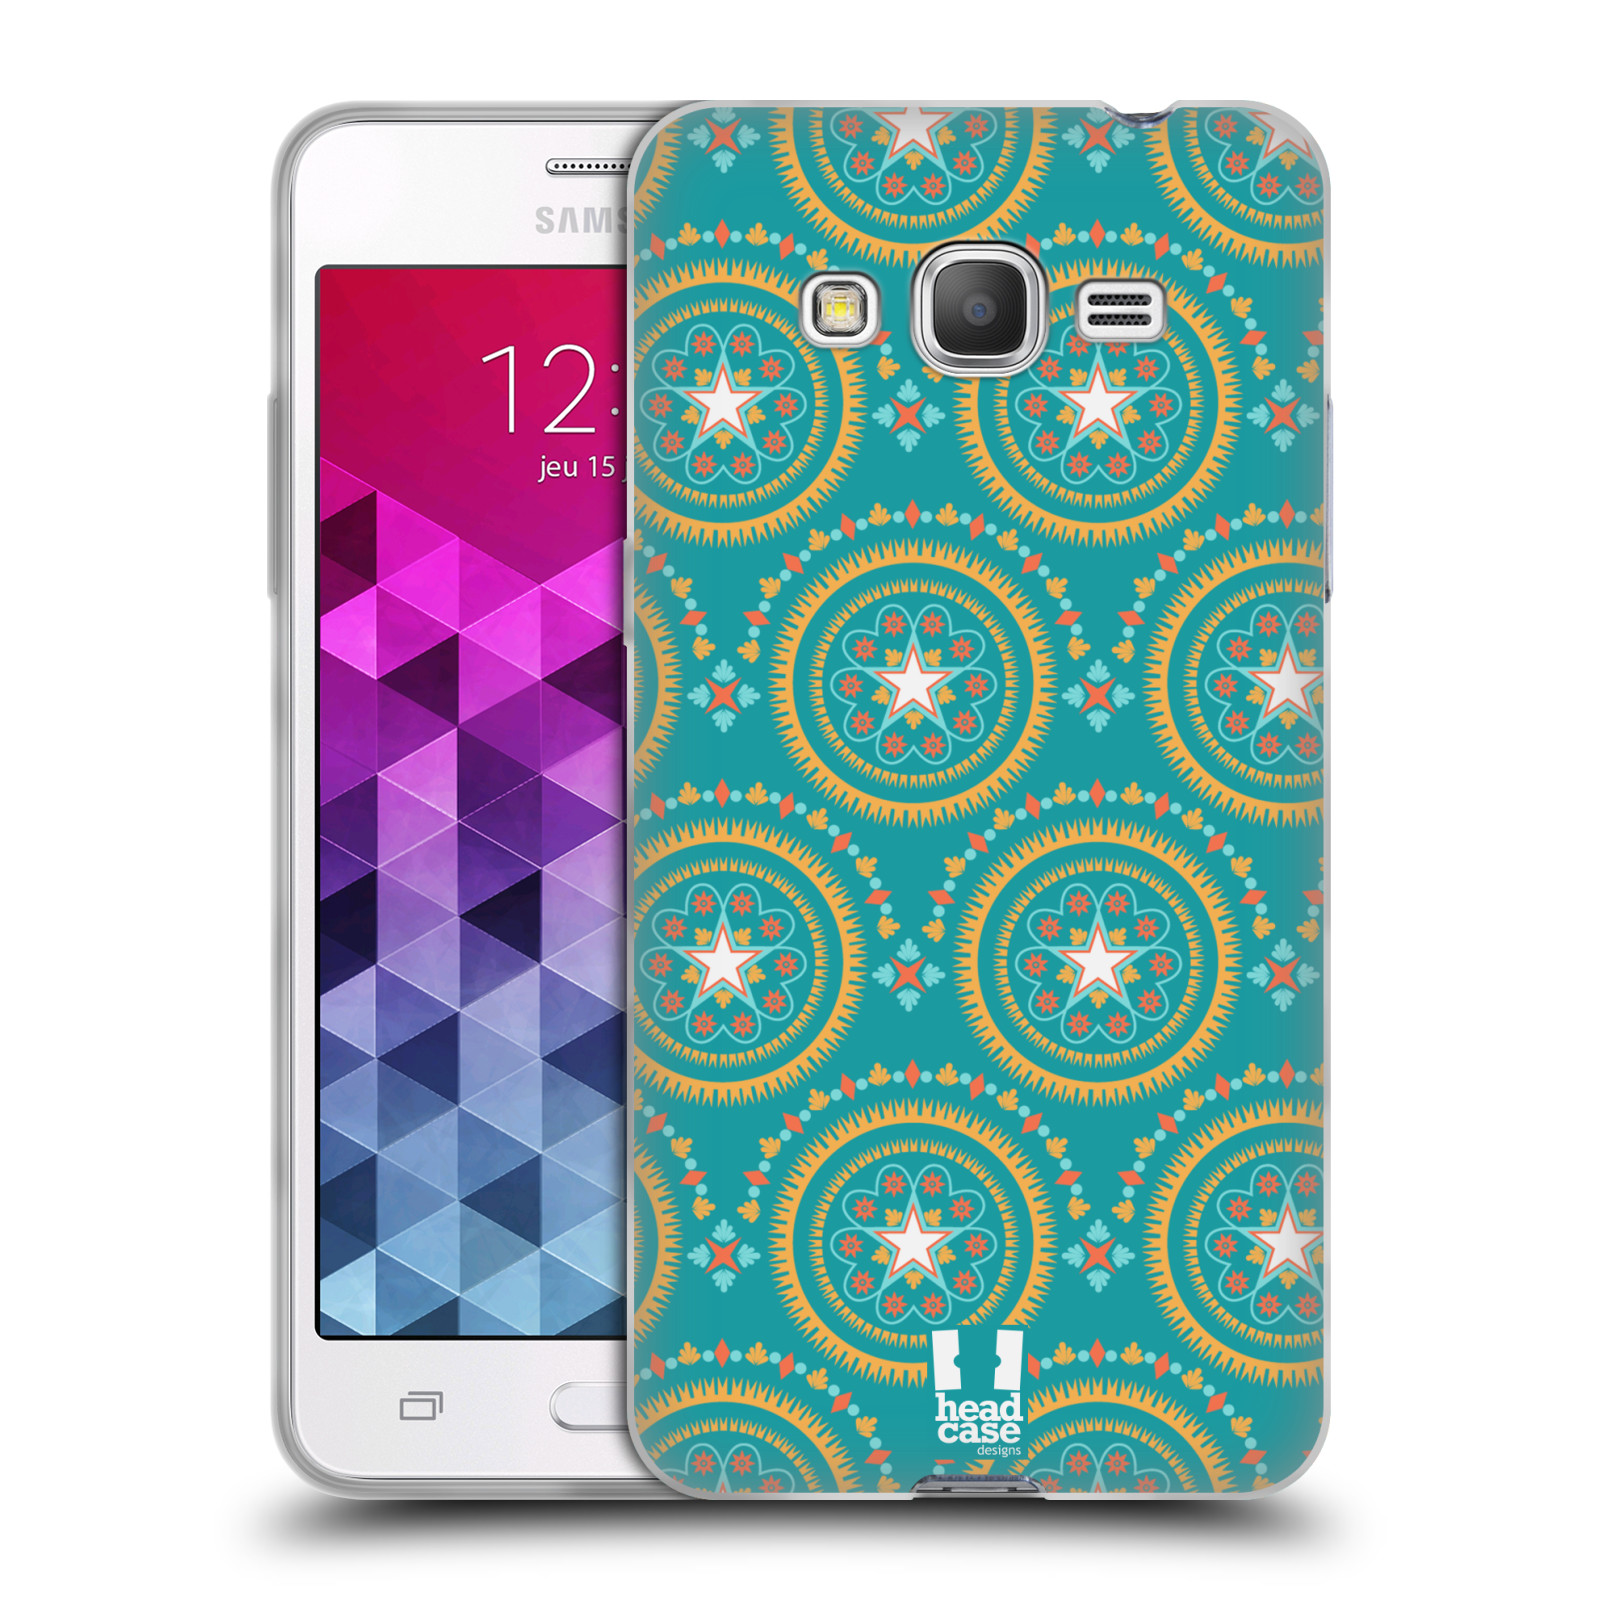 HEAD CASE BOHEMIAN PATTERNS GEL CASE FOR SAMSUNG GALAXY GRAND PRIME 3G DUOS